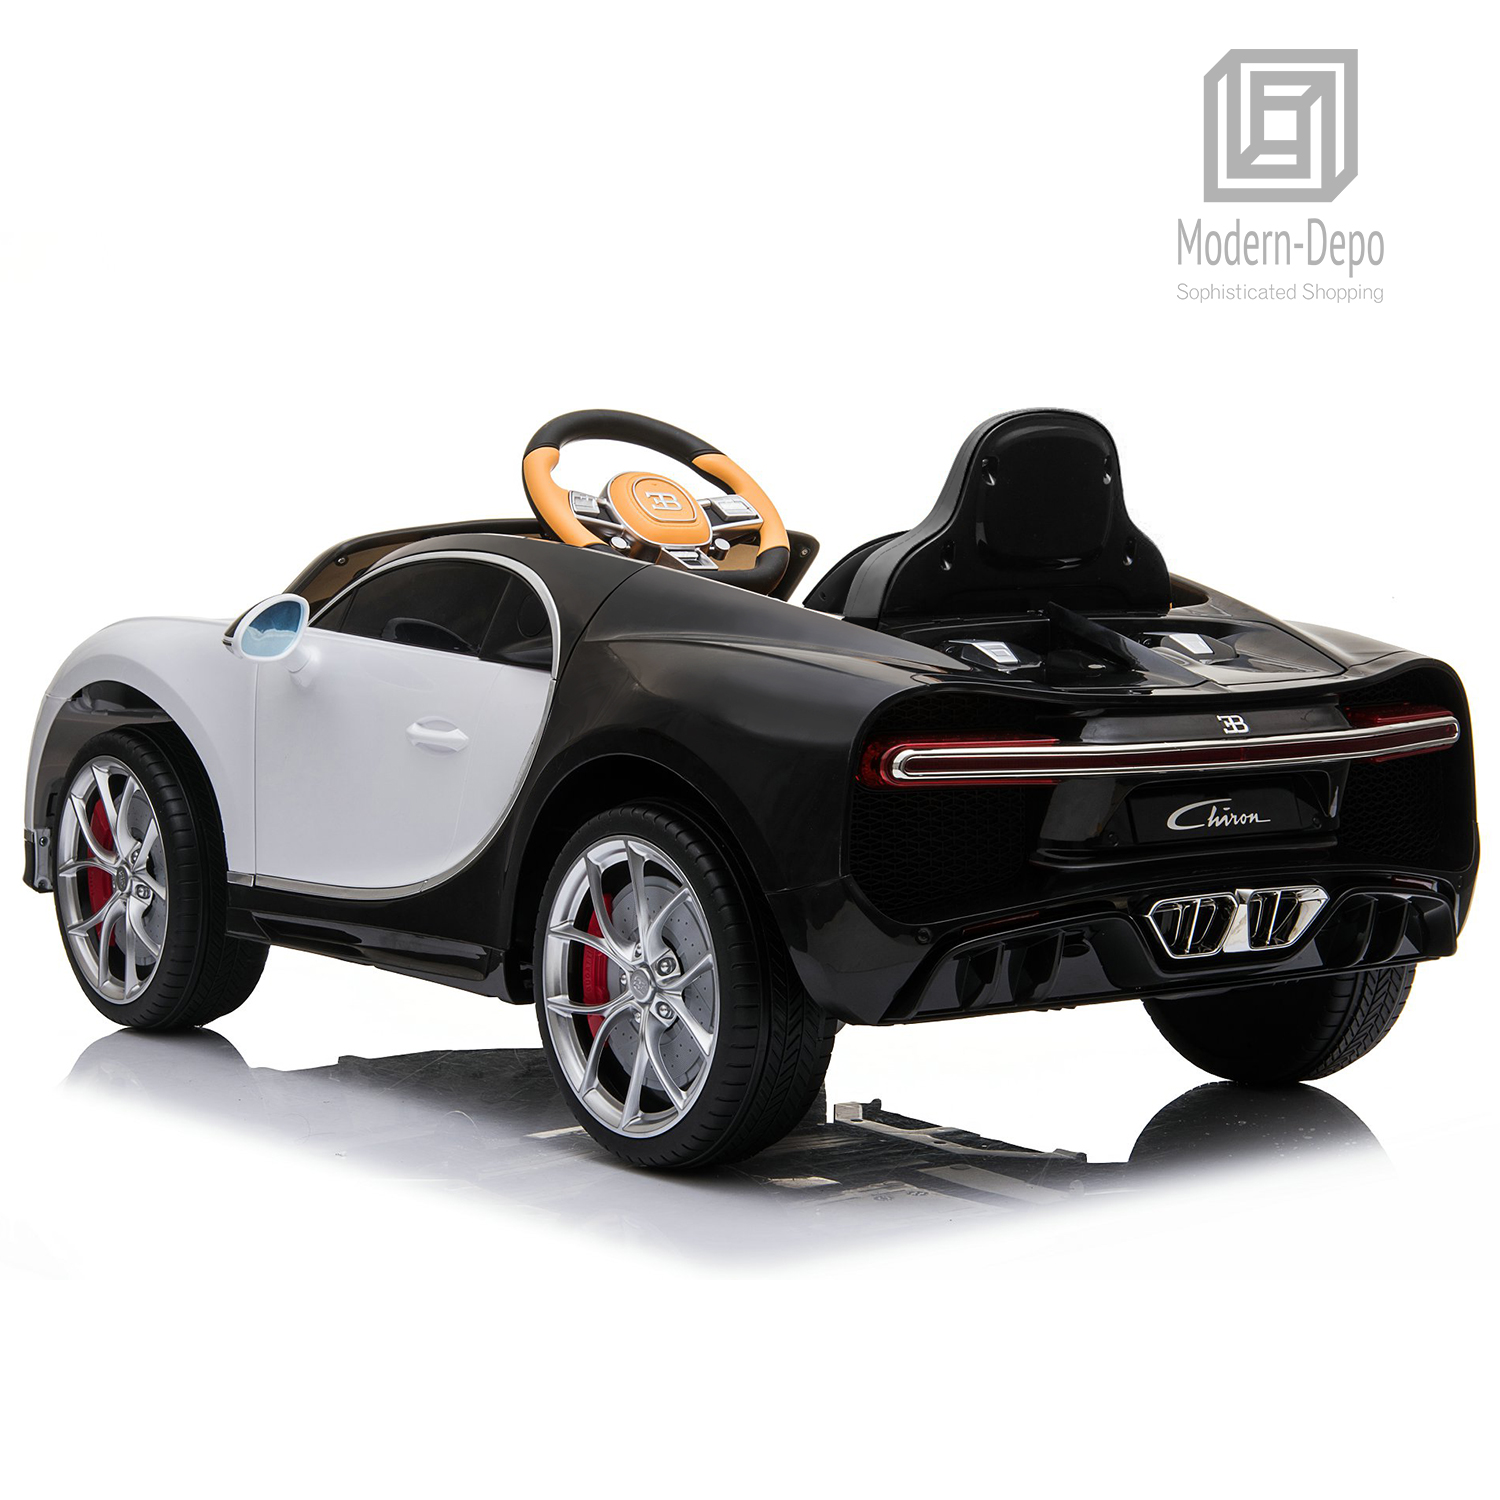 Bugatti-Chiron-12V-Kids-Ride-On-Car-with-Remote-Control-High-Speed-Motor miniature 39